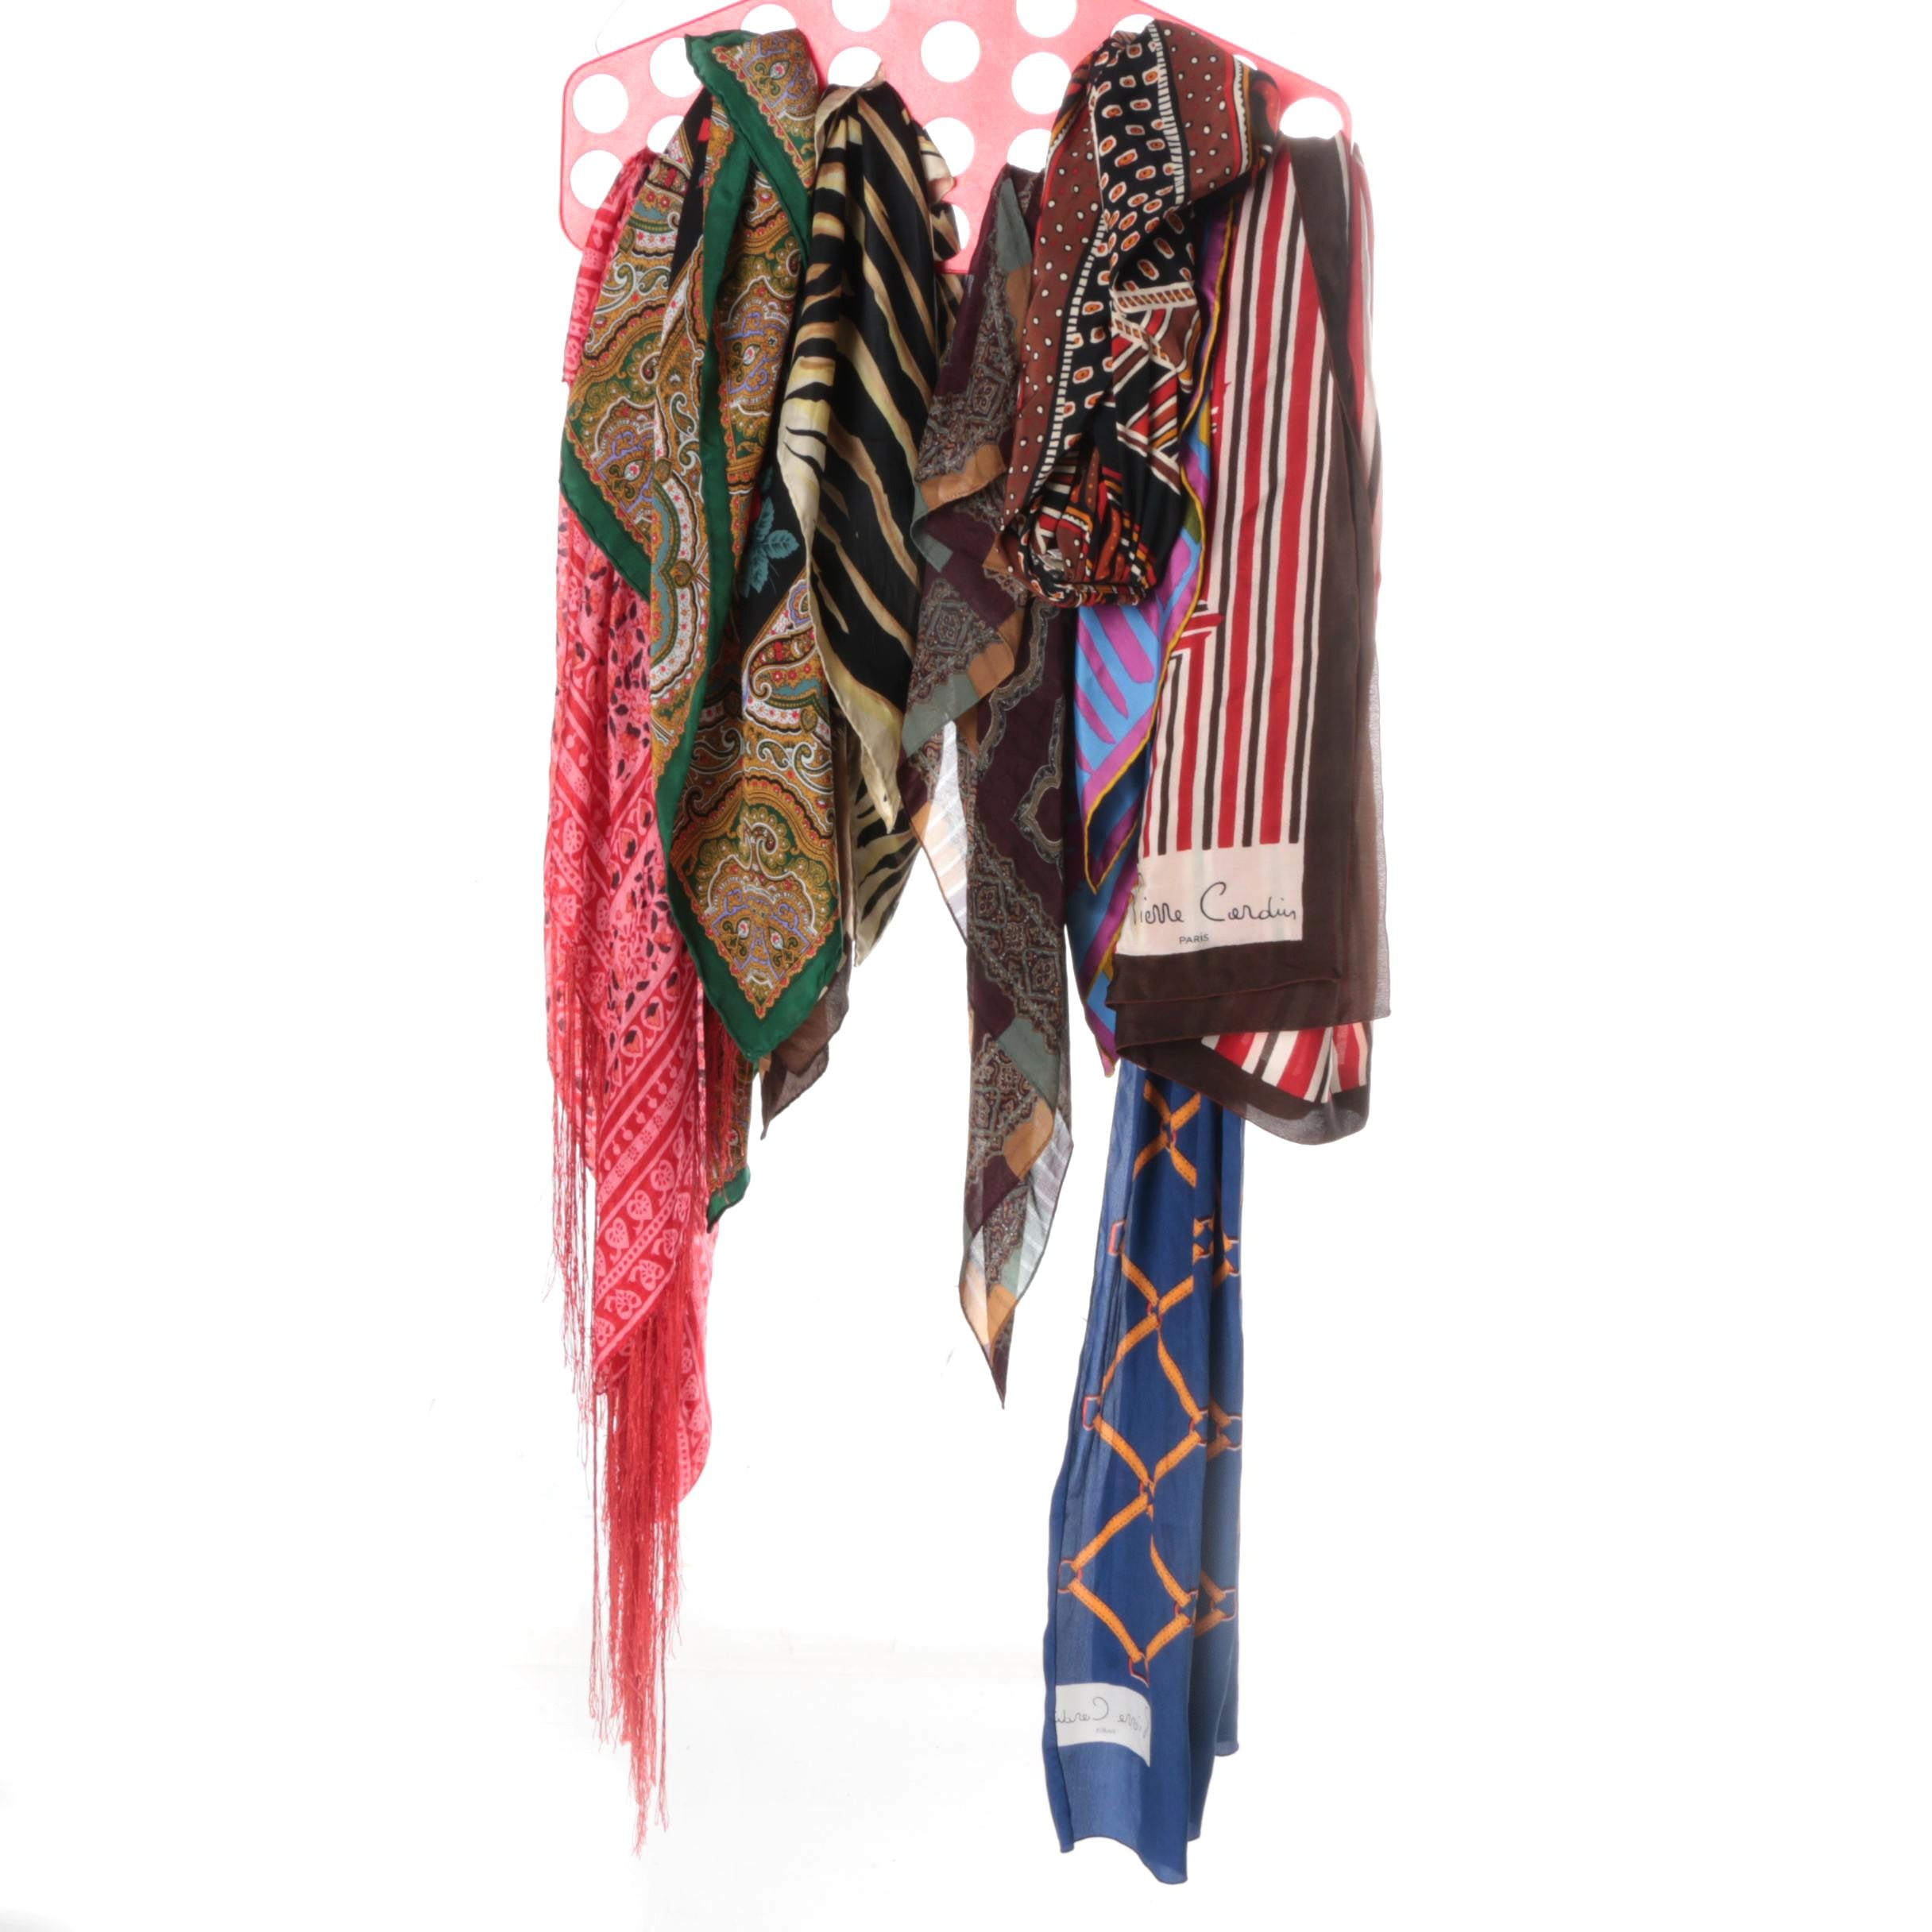 Printed Silk Scarves Including Pierre Cardin and Dana Buchman